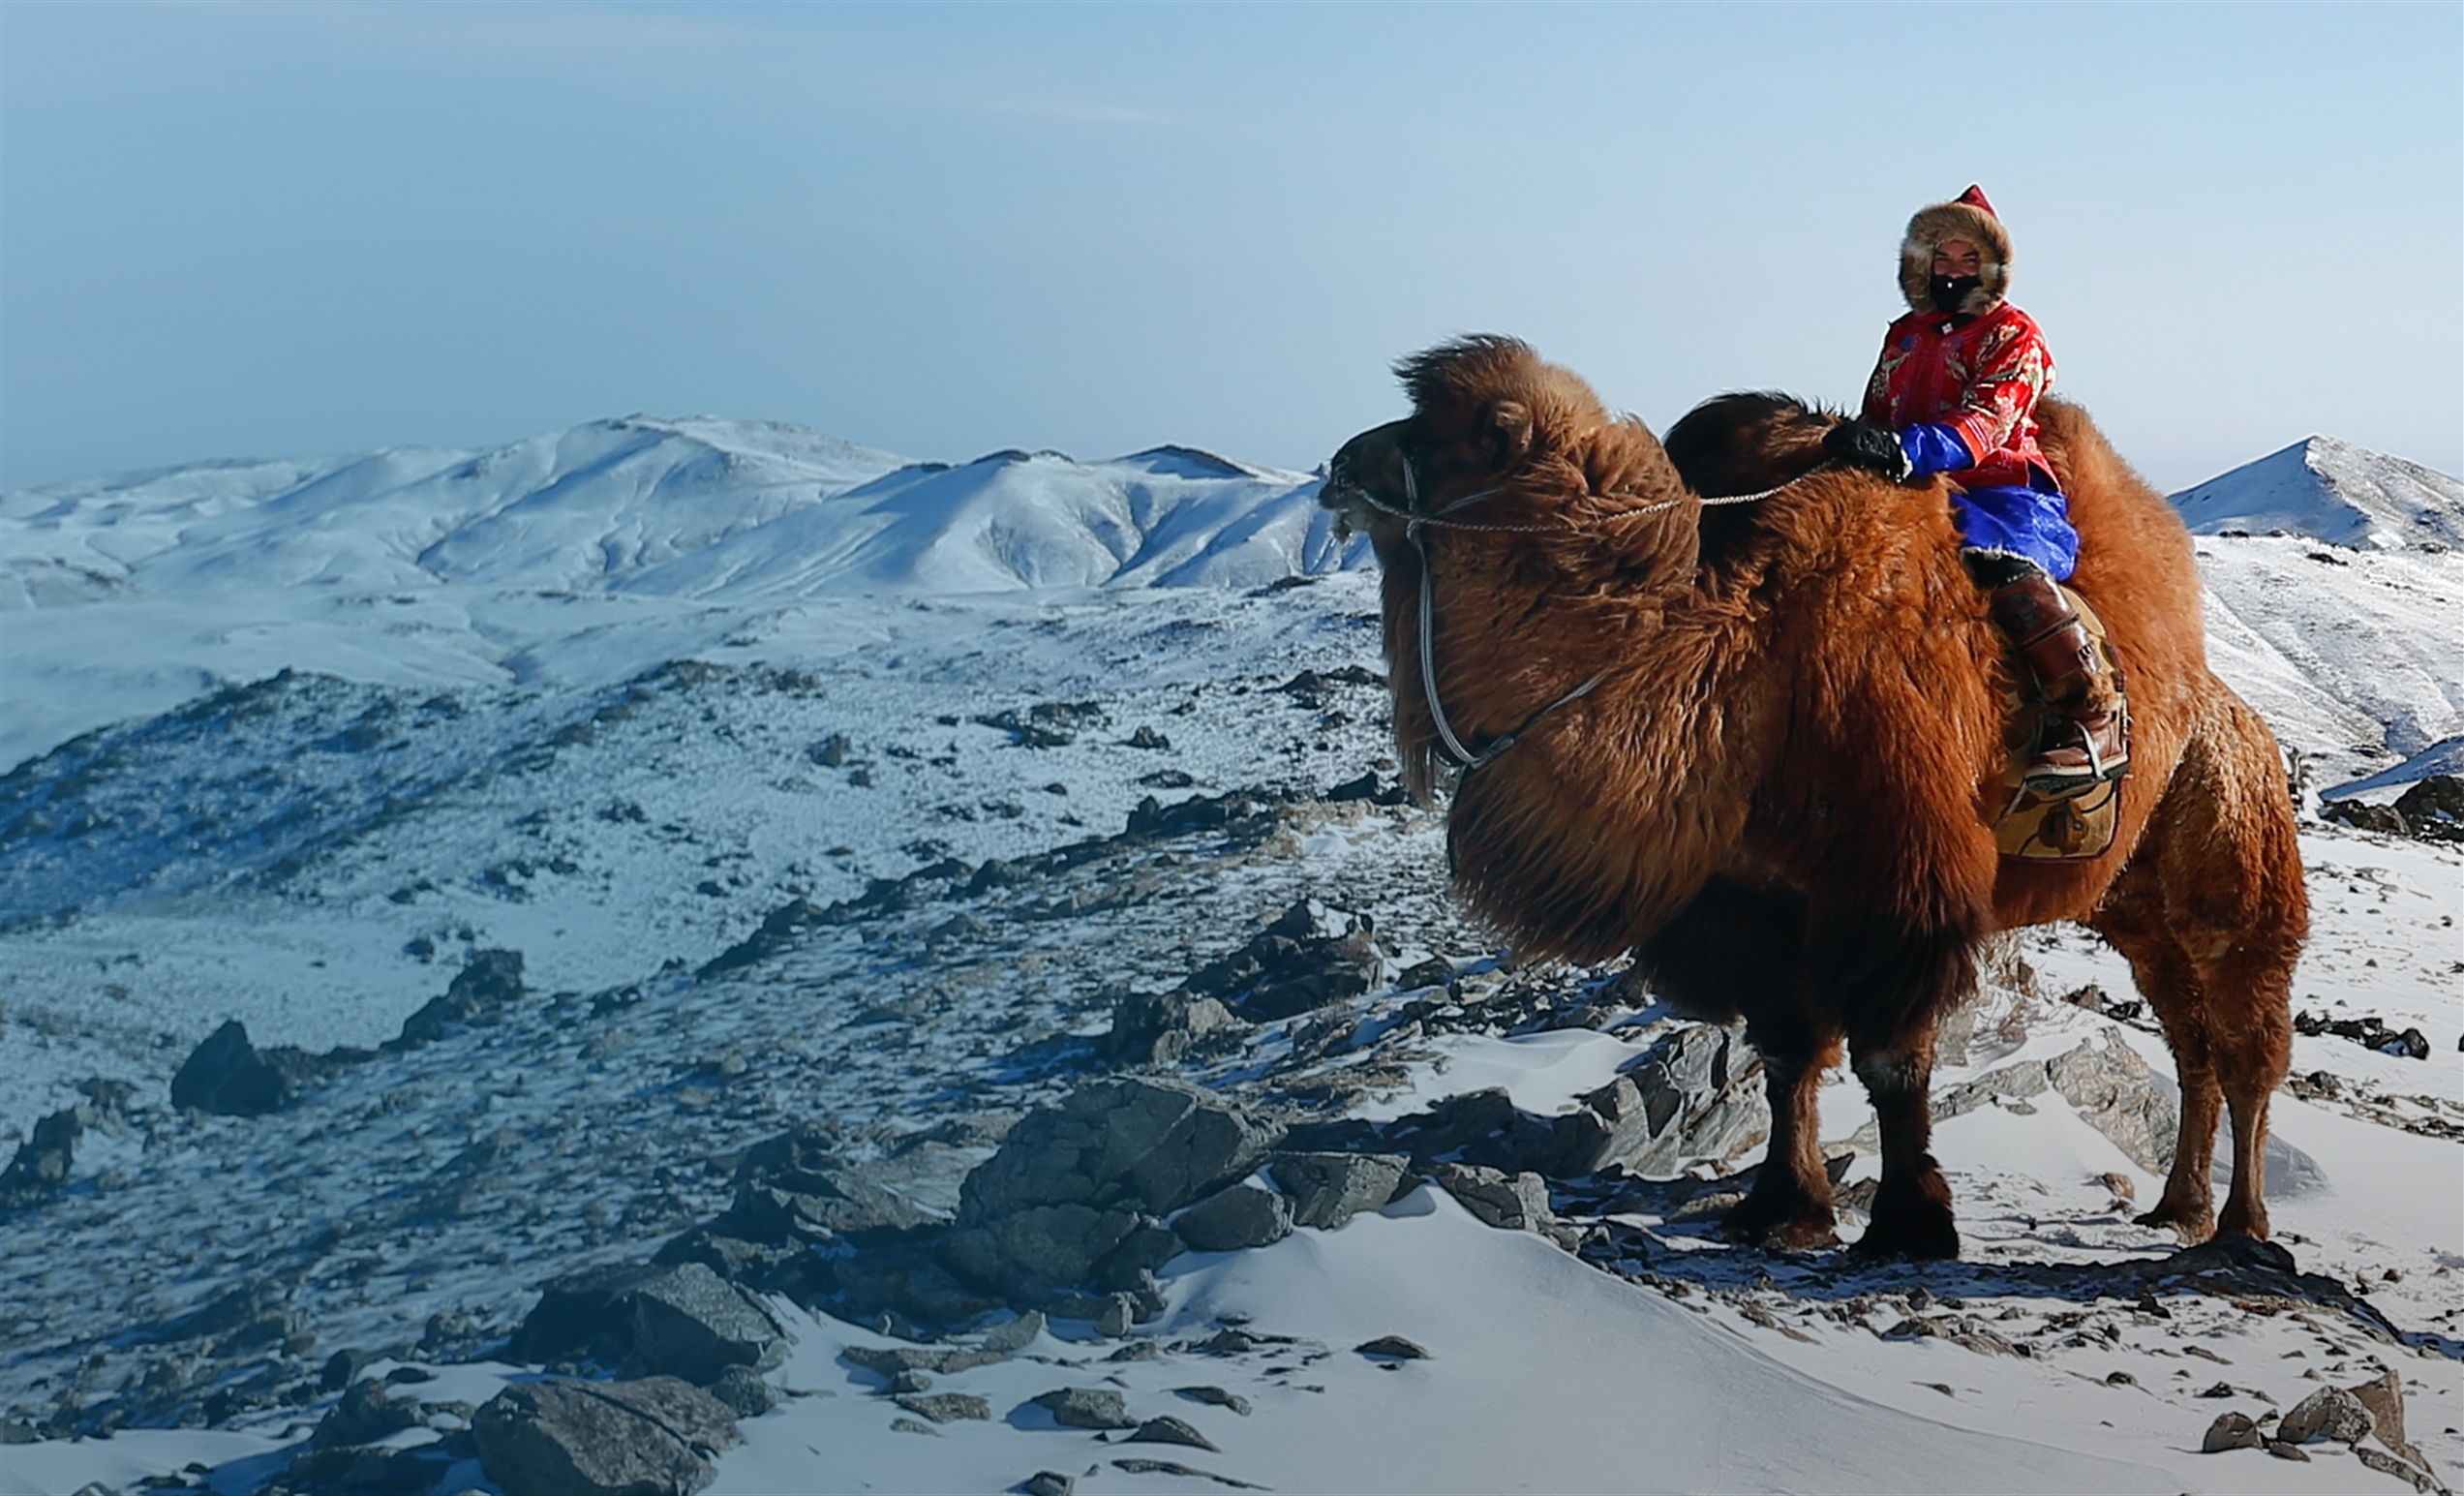 Cold Camel Expedition Follow Kelly Wilsons' adventures on her wild ride across the Gobi Desert